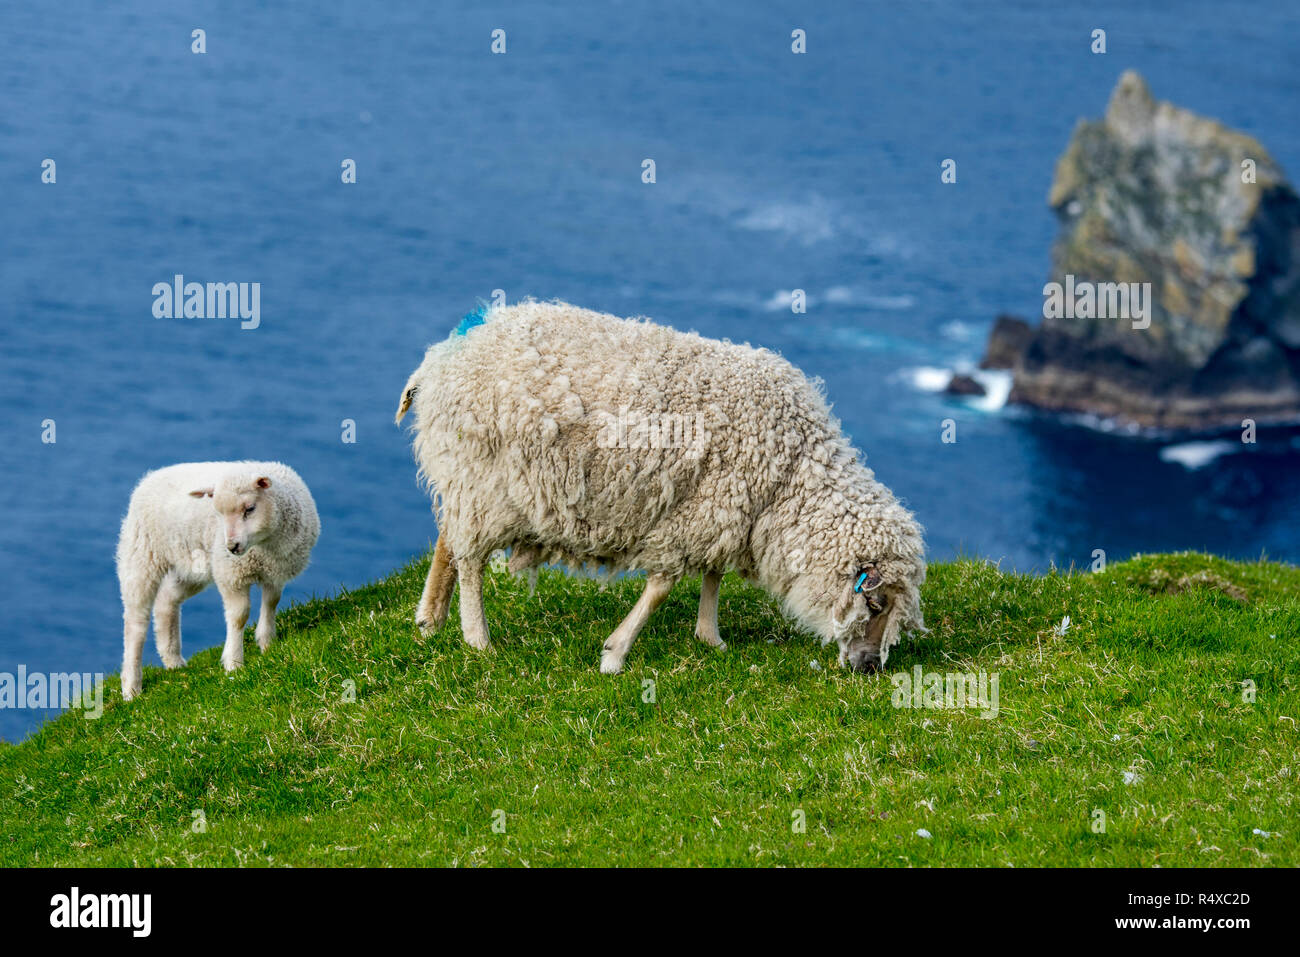 White sheep ewe and lamb grazing grass on sea clifftop at Hermaness National Nature Reserve, Unst, Shetland Islands, Scotland, UK - Stock Image